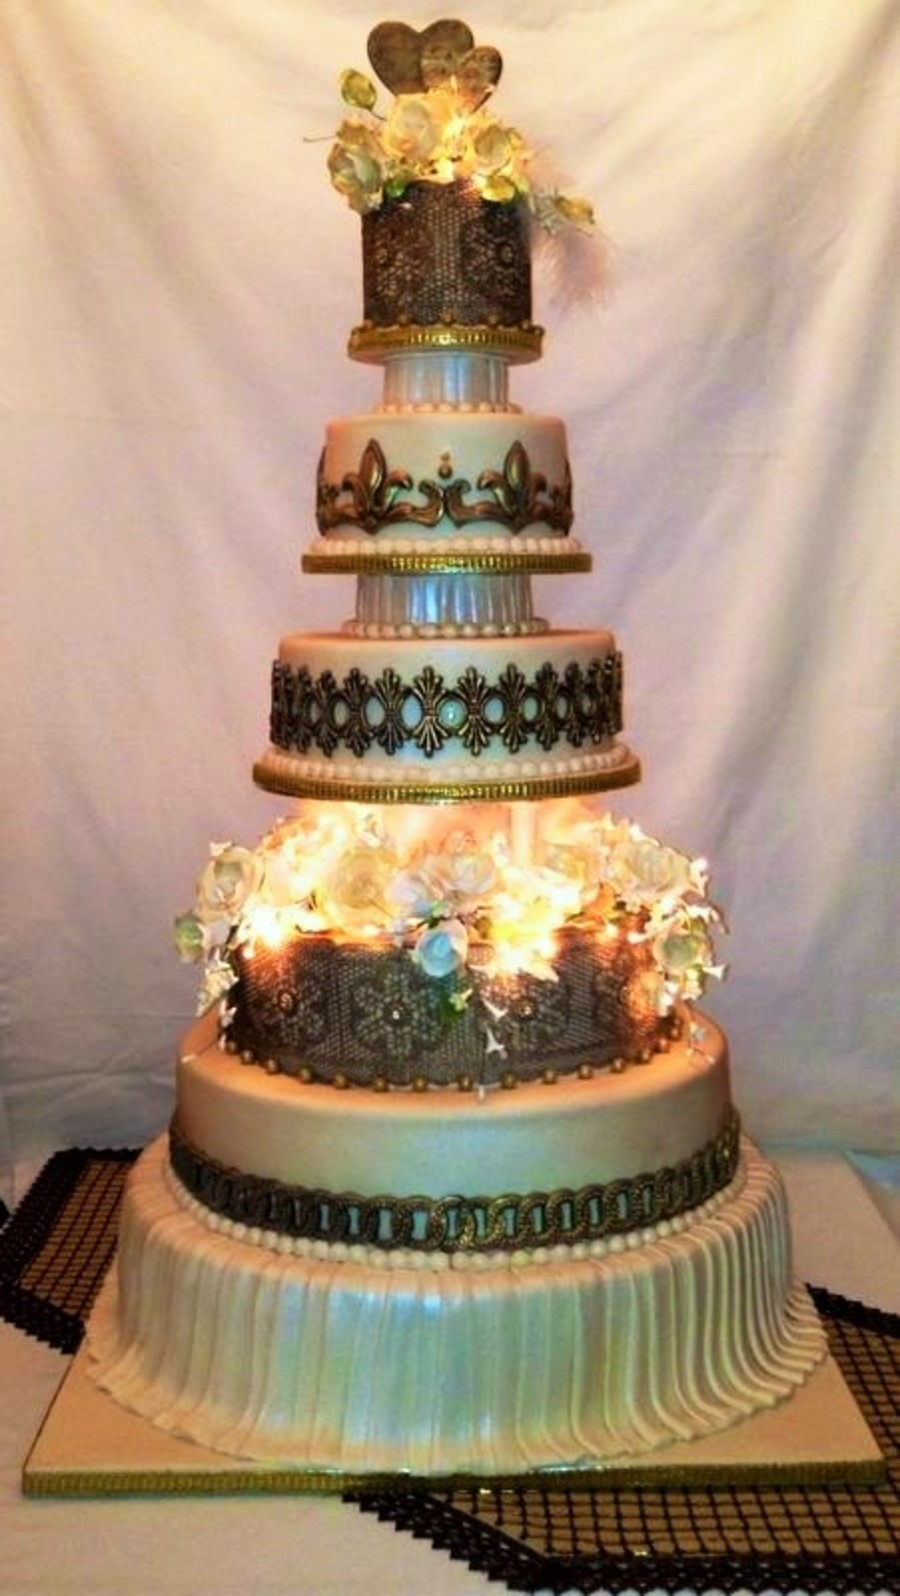 Cake Decorating Central Northmead : I Do... - CakeCentral.com